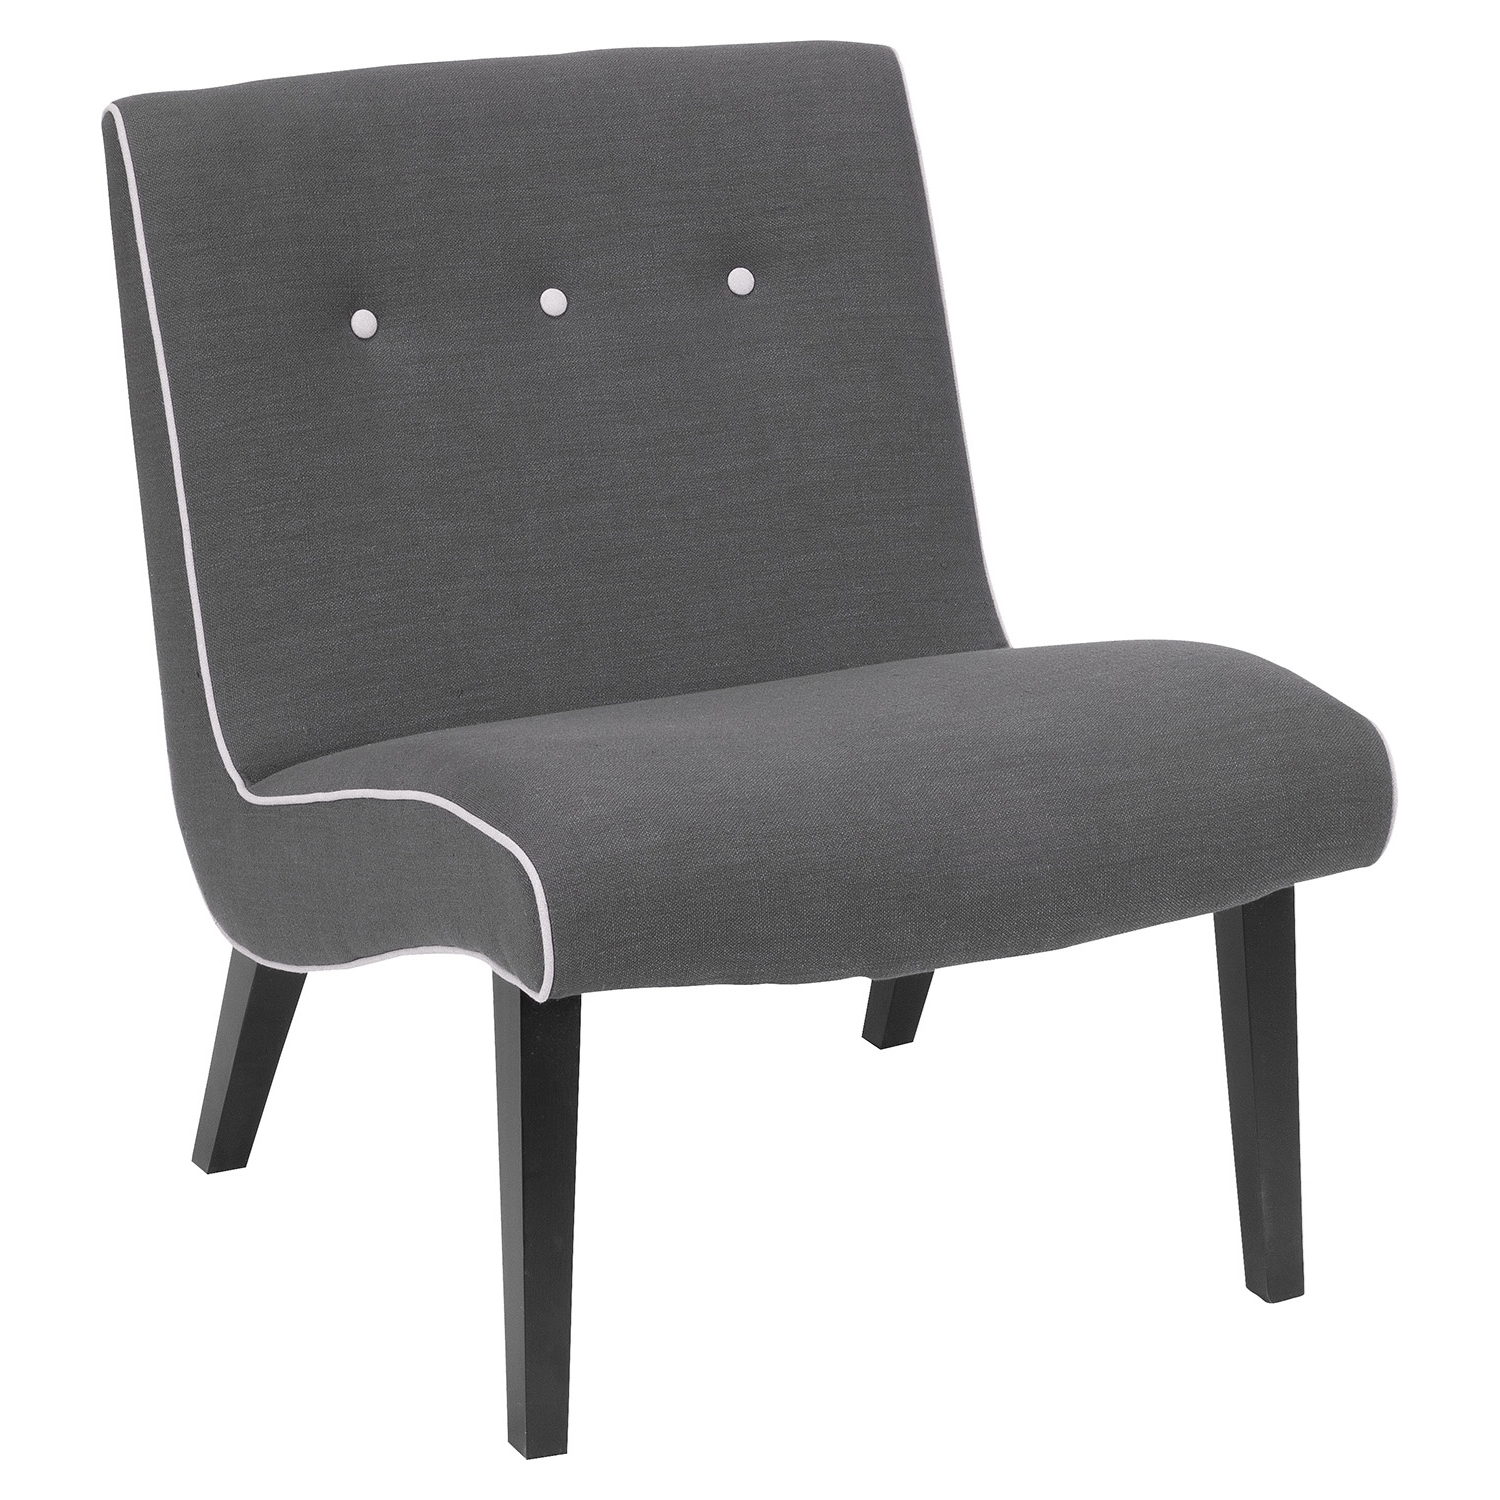 Mancini Lounge Chair - Button Tufted, Light Gray (Set of 2)